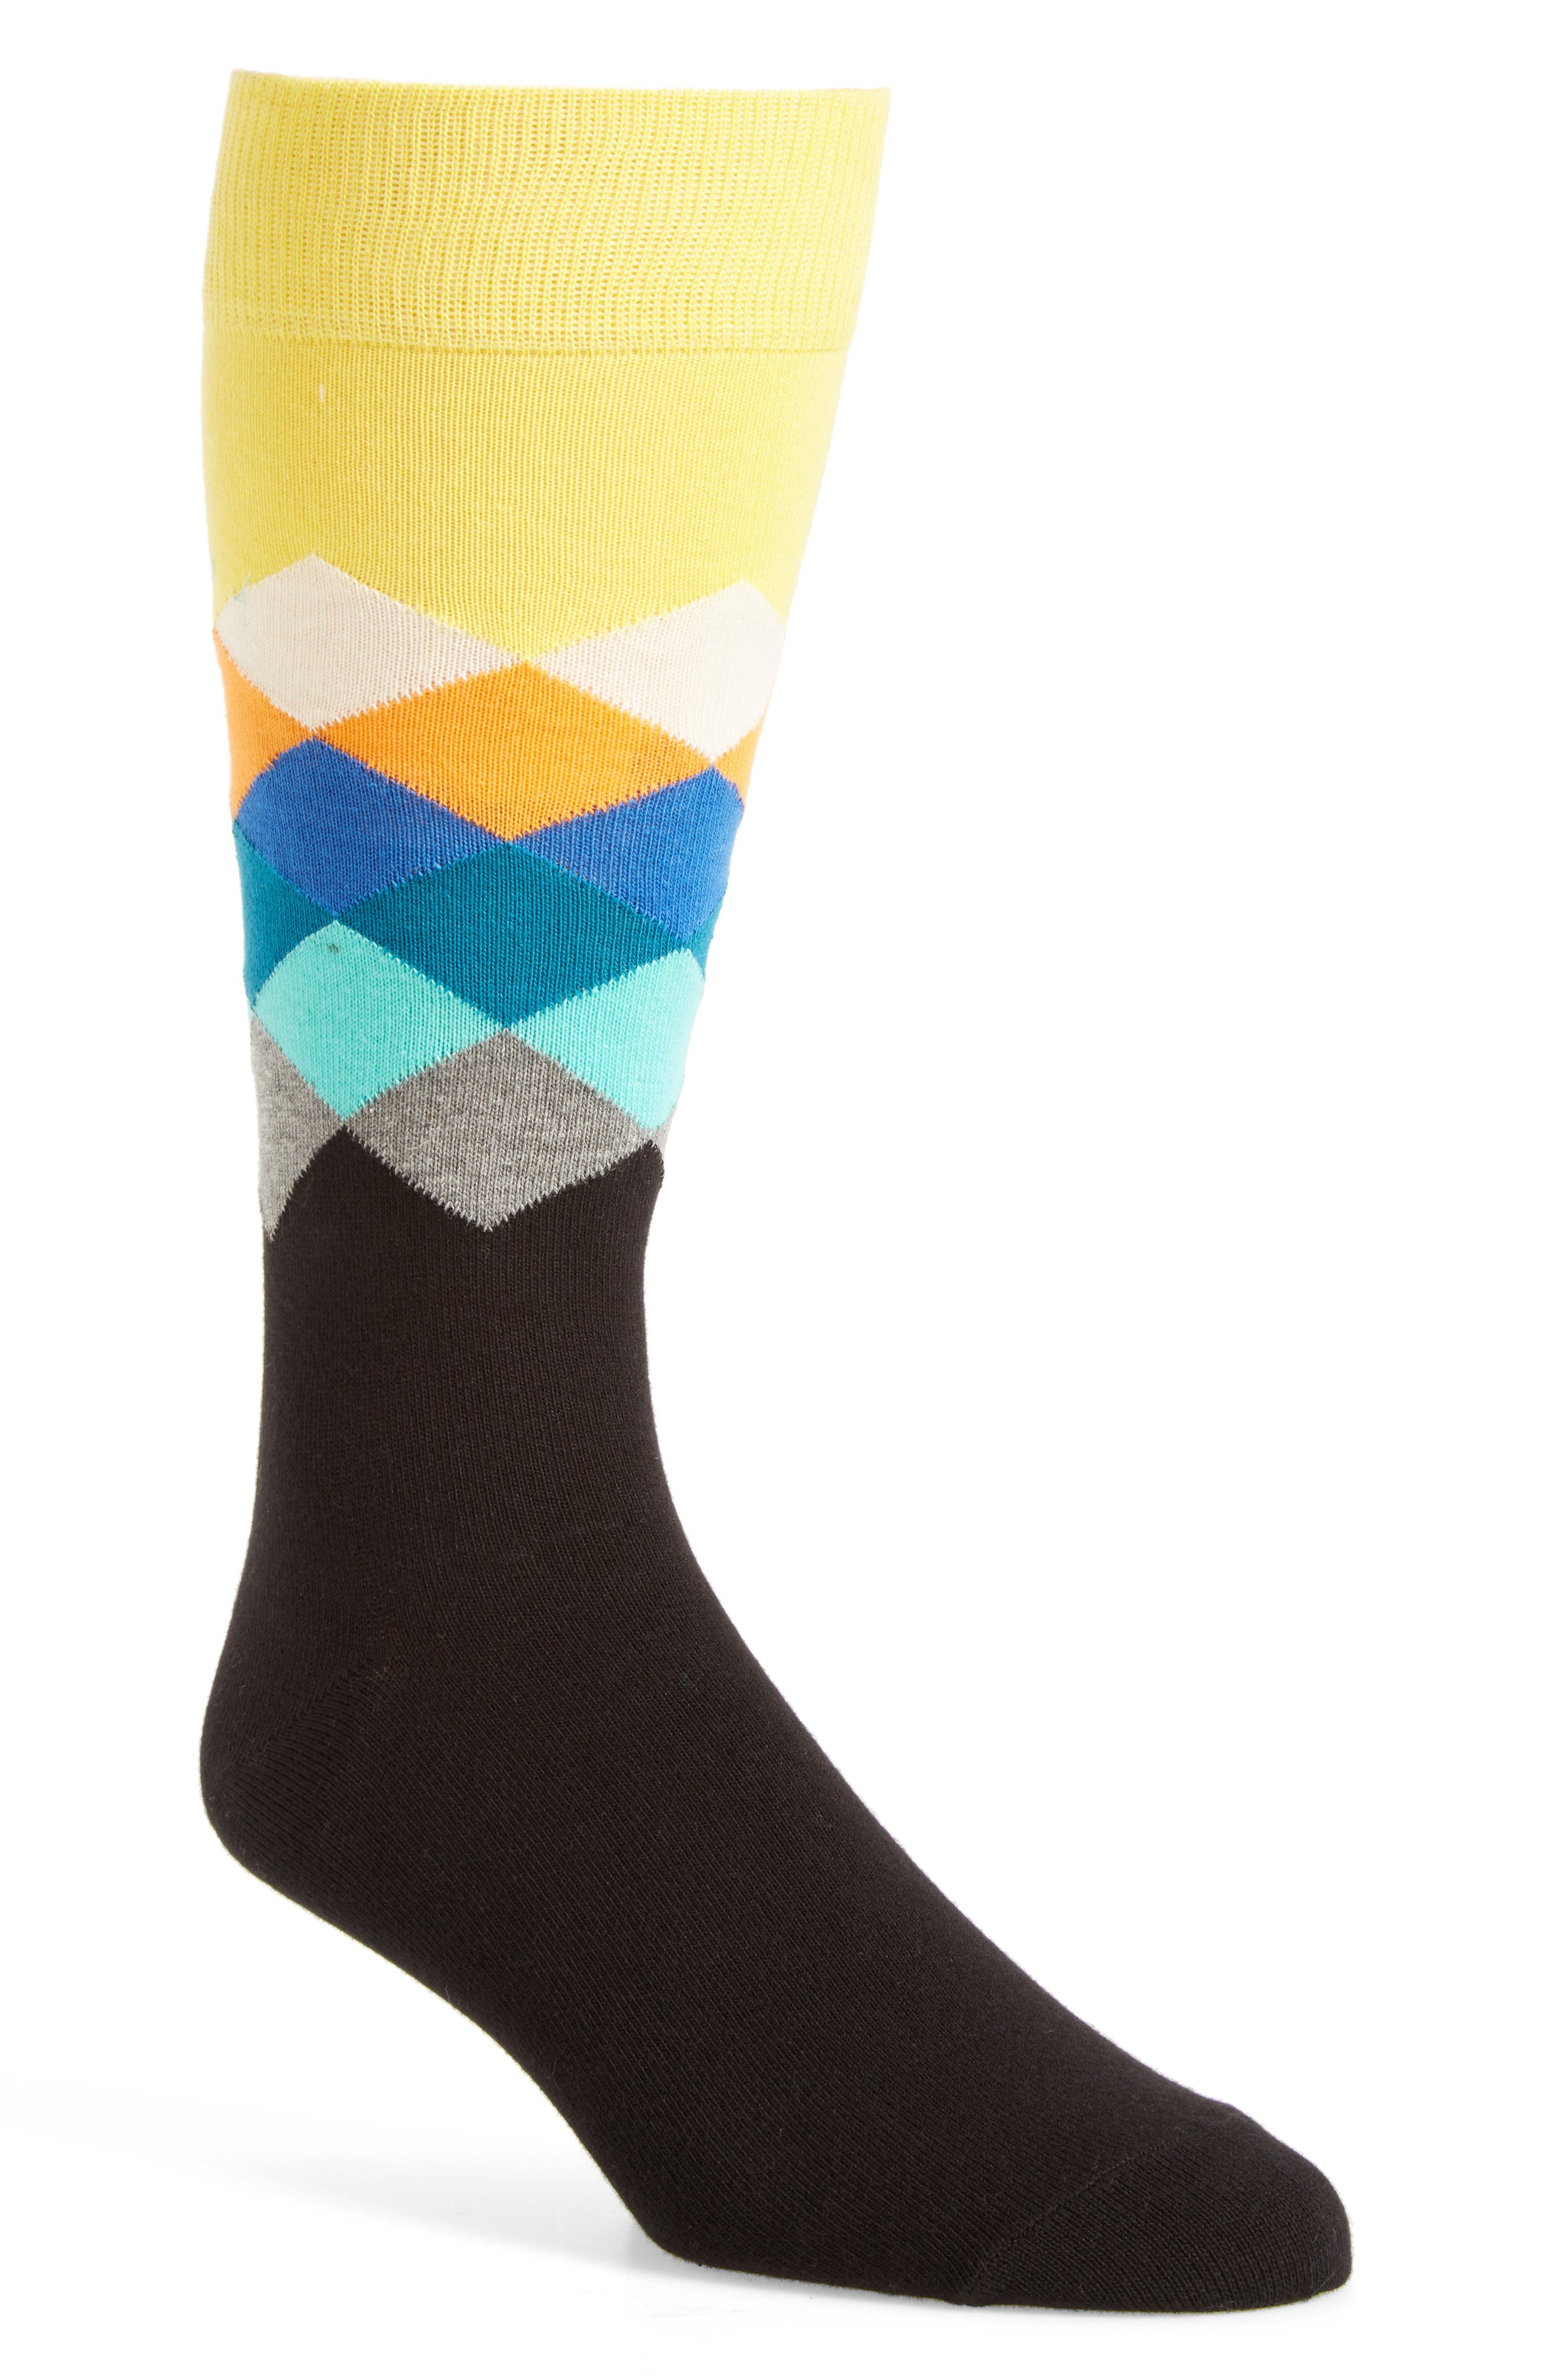 Diamond Socks,                             Main thumbnail 1, color,                             422